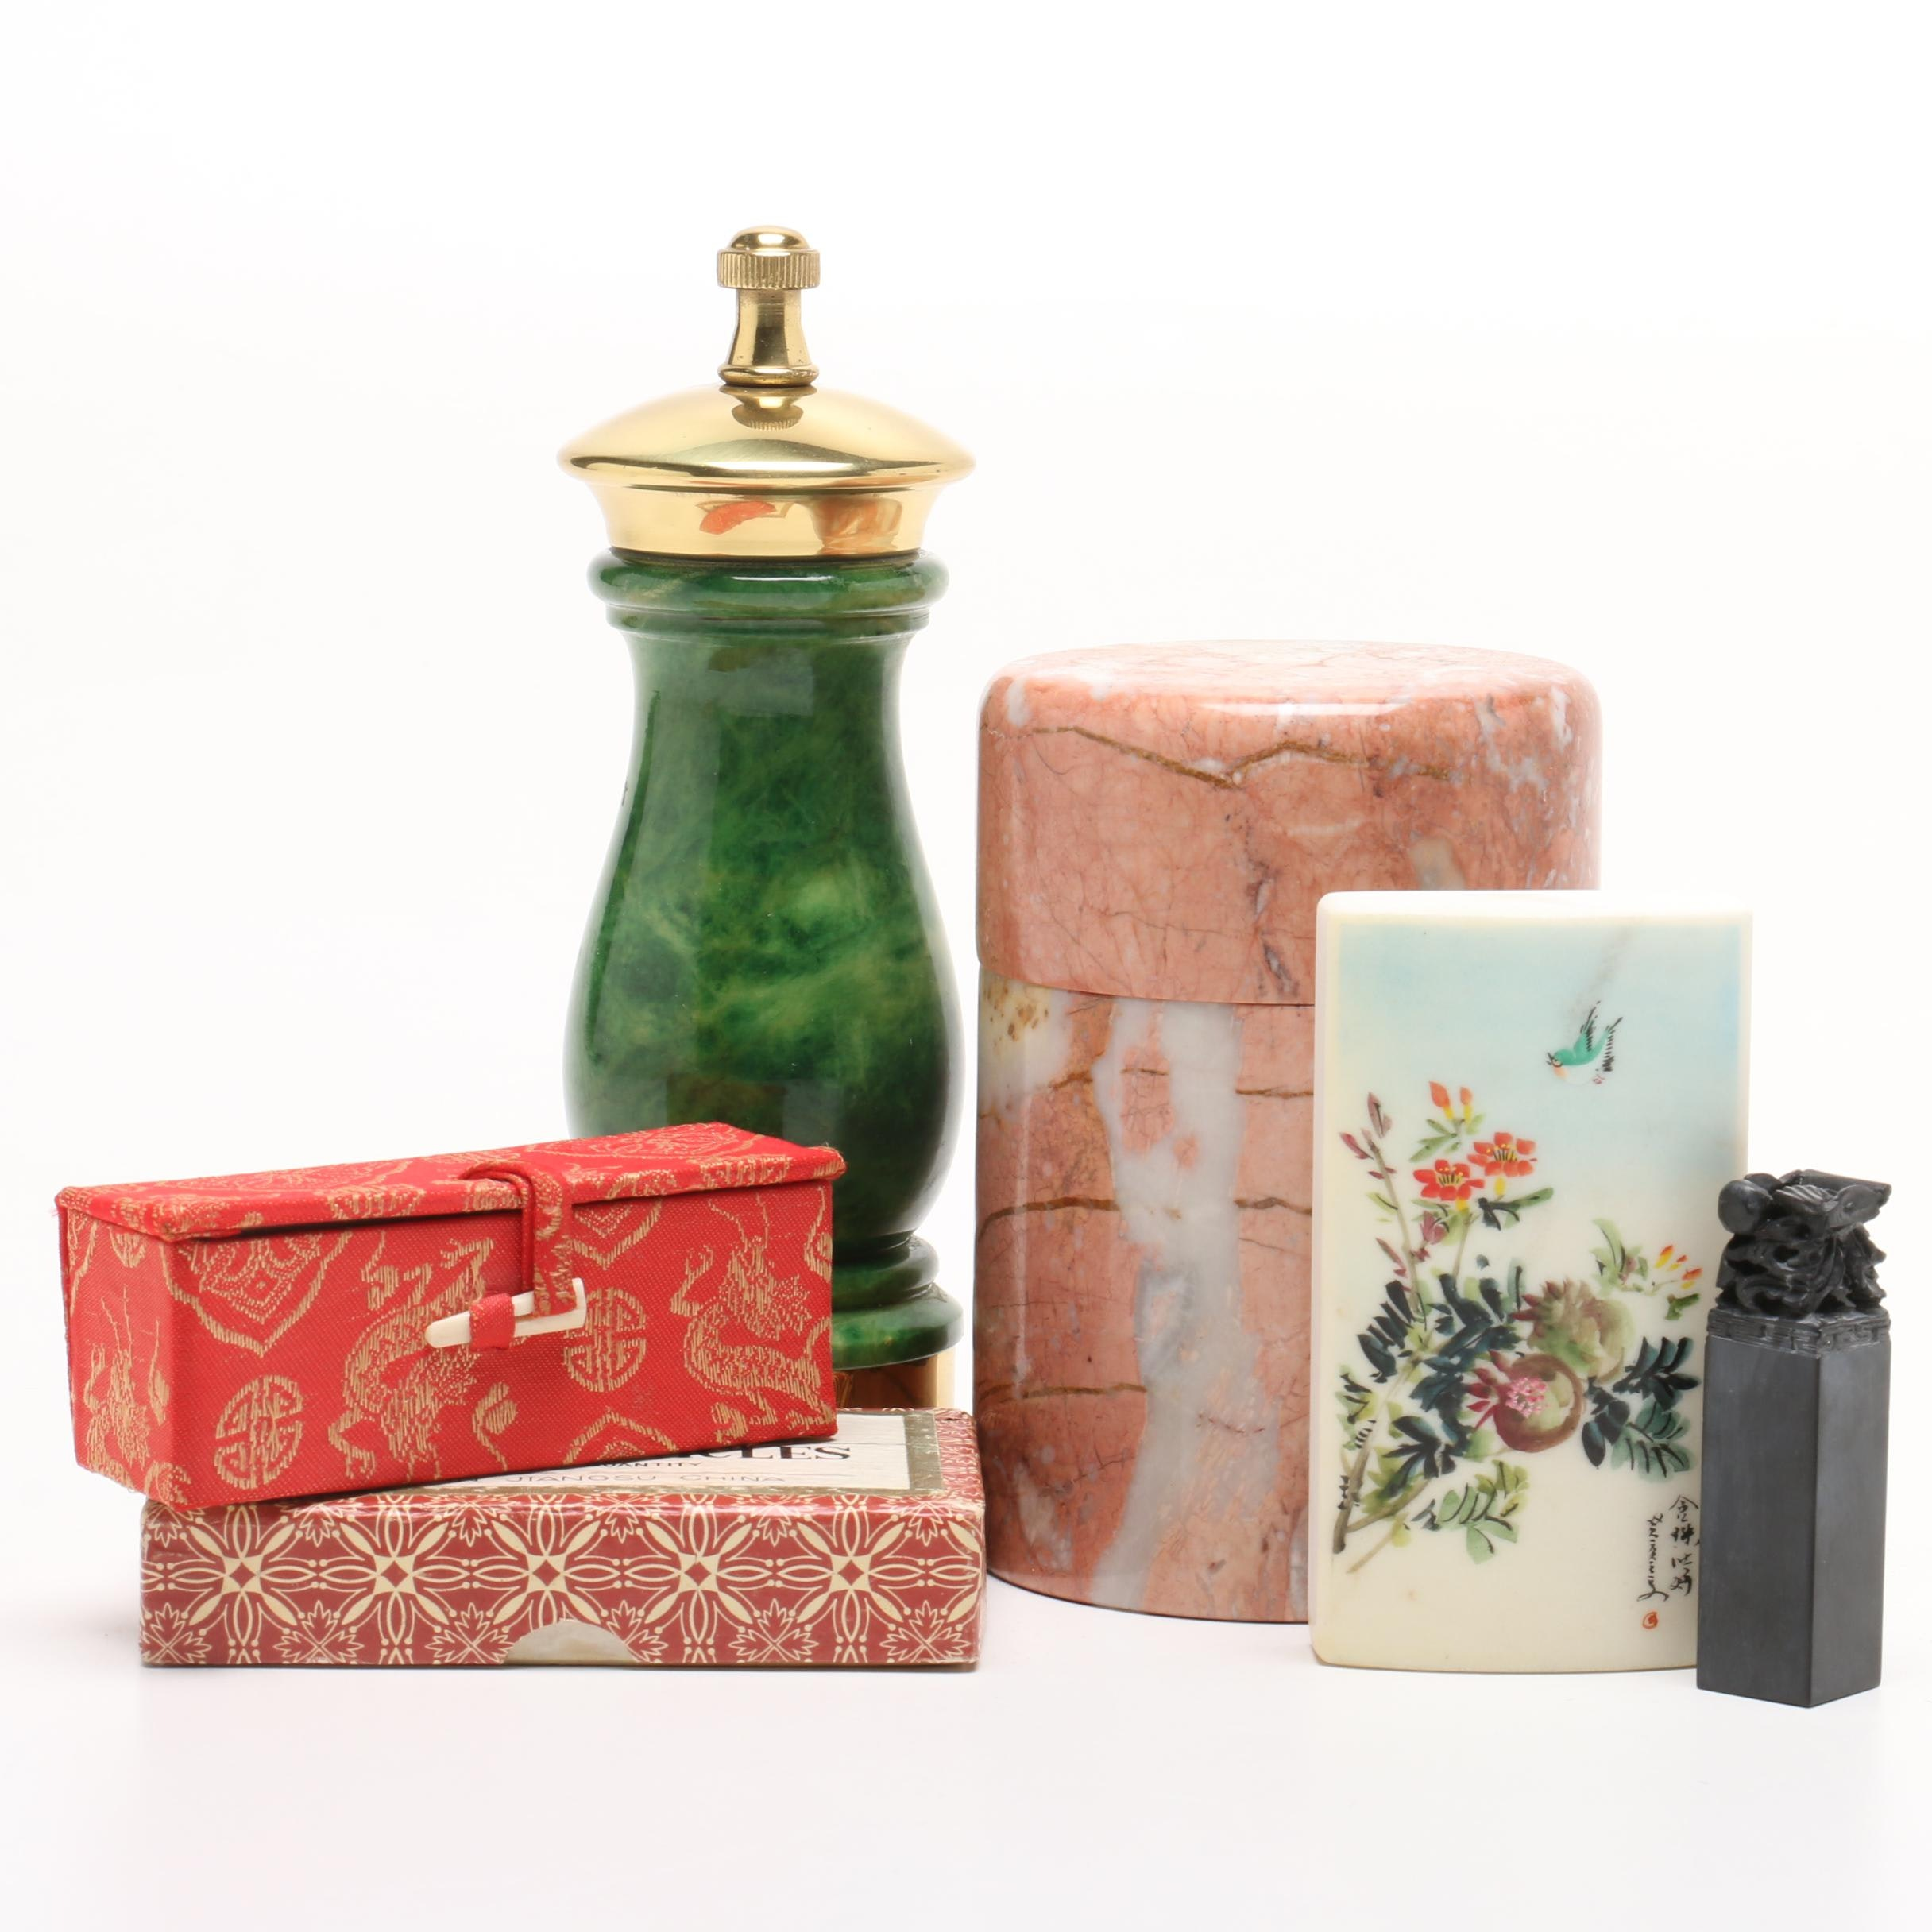 Marble Tableware and Decor Items Including Including Italian Pepper Grinder